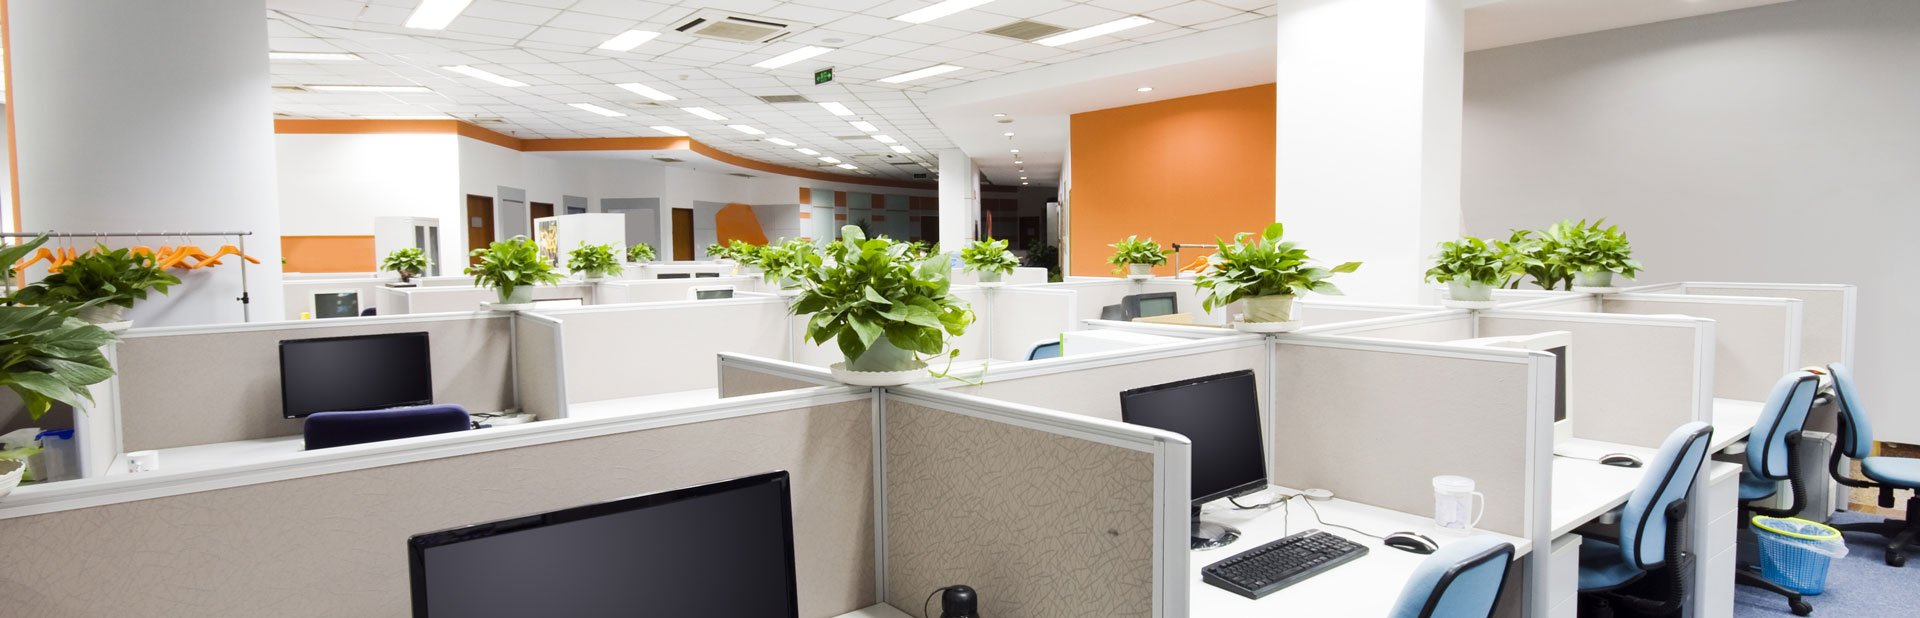 Office Lighting and Electrical Work